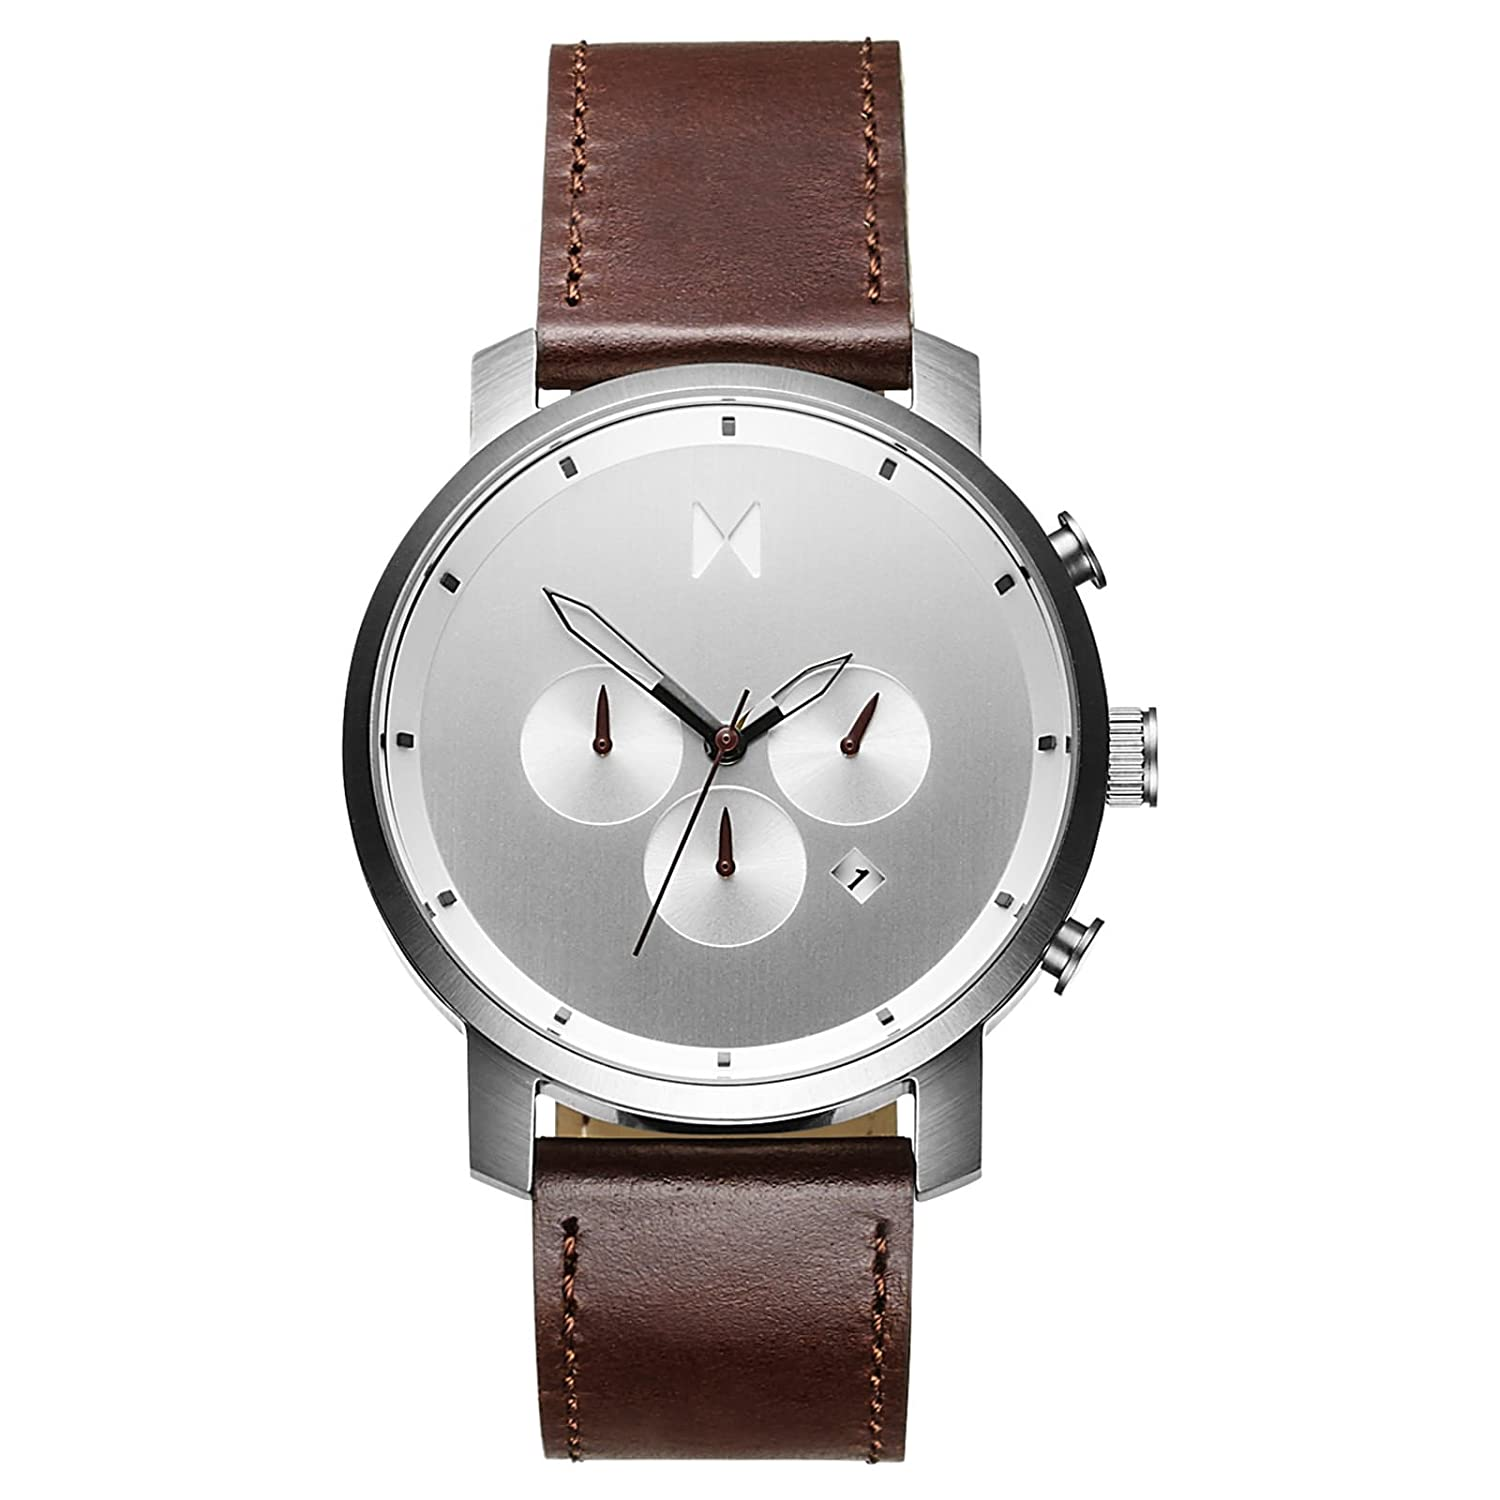 MVMT Watches Chrono Herren Uhr Silver-Brown Leather